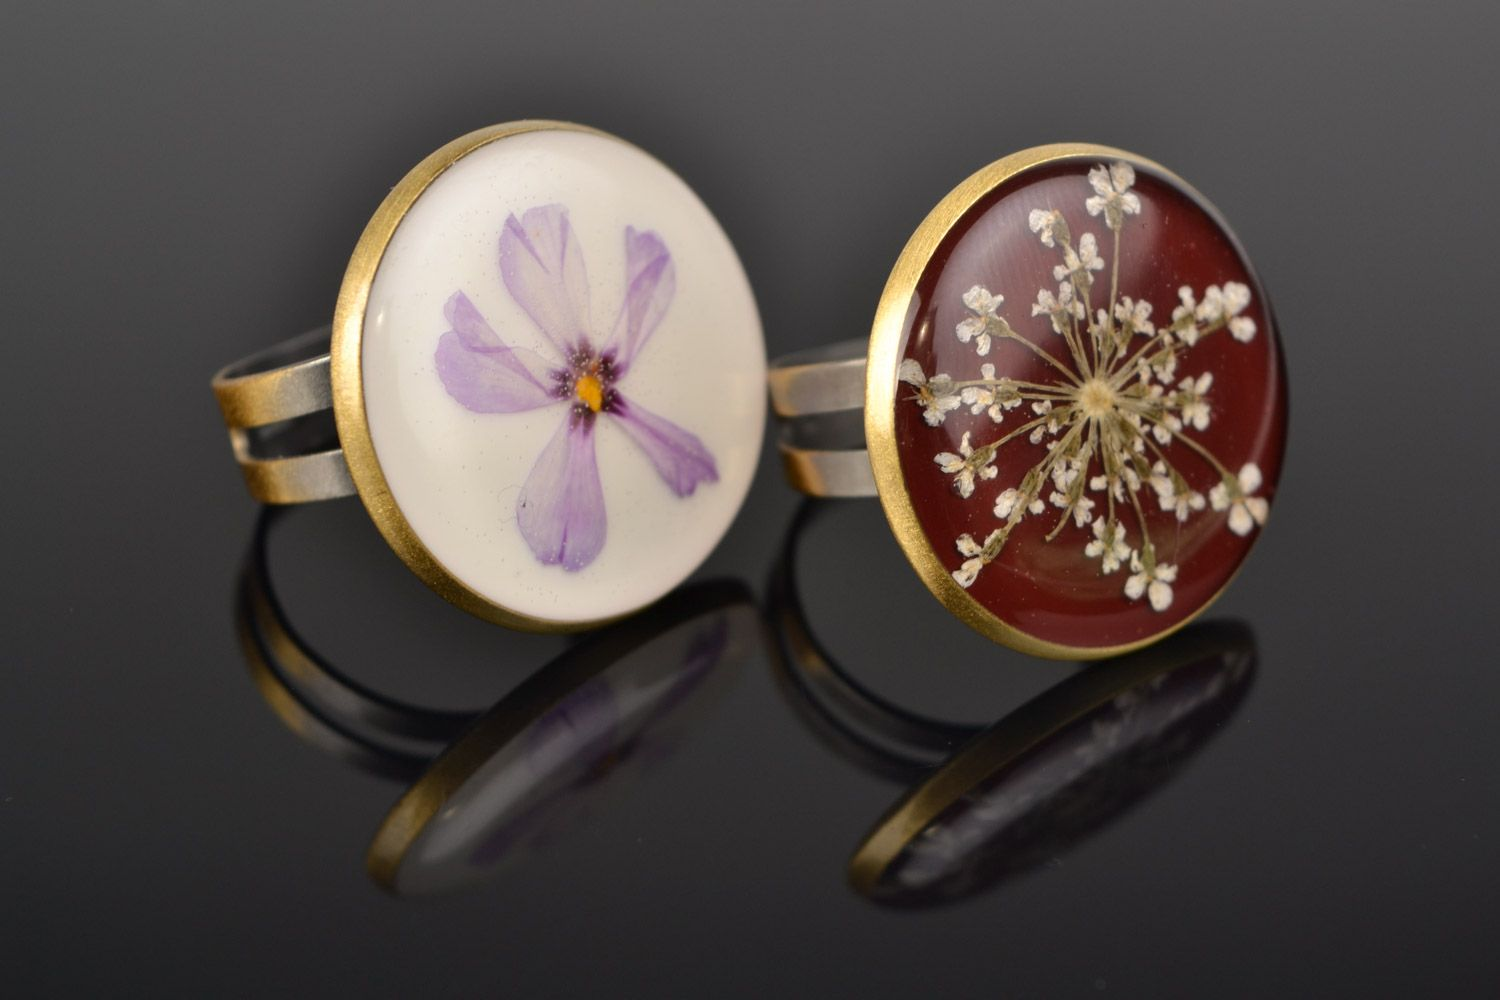 Two handmade flat round rings with natural flowers in epoxy resin for women photo 1